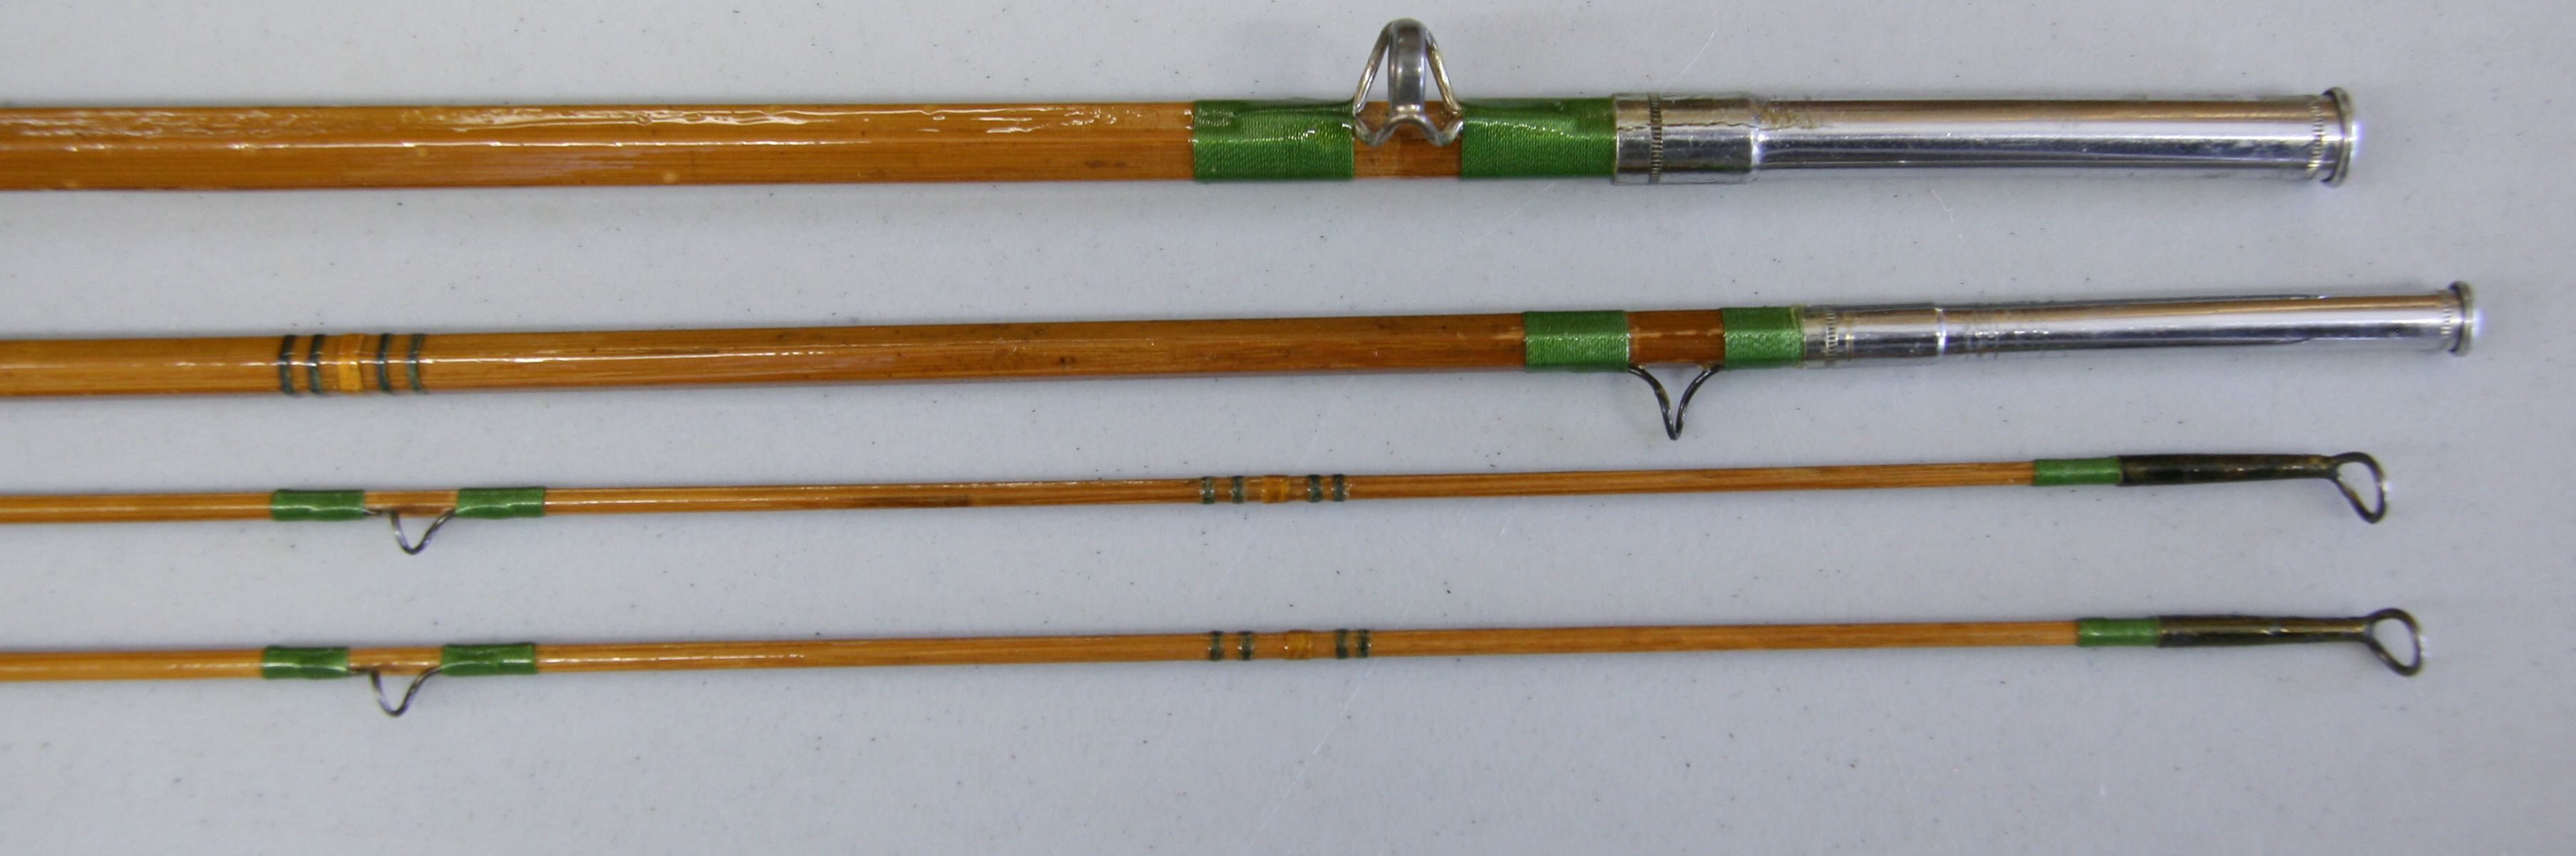 Rick 39 s rods vintage fly fishing rods and reels denver for Bamboo fishing poles